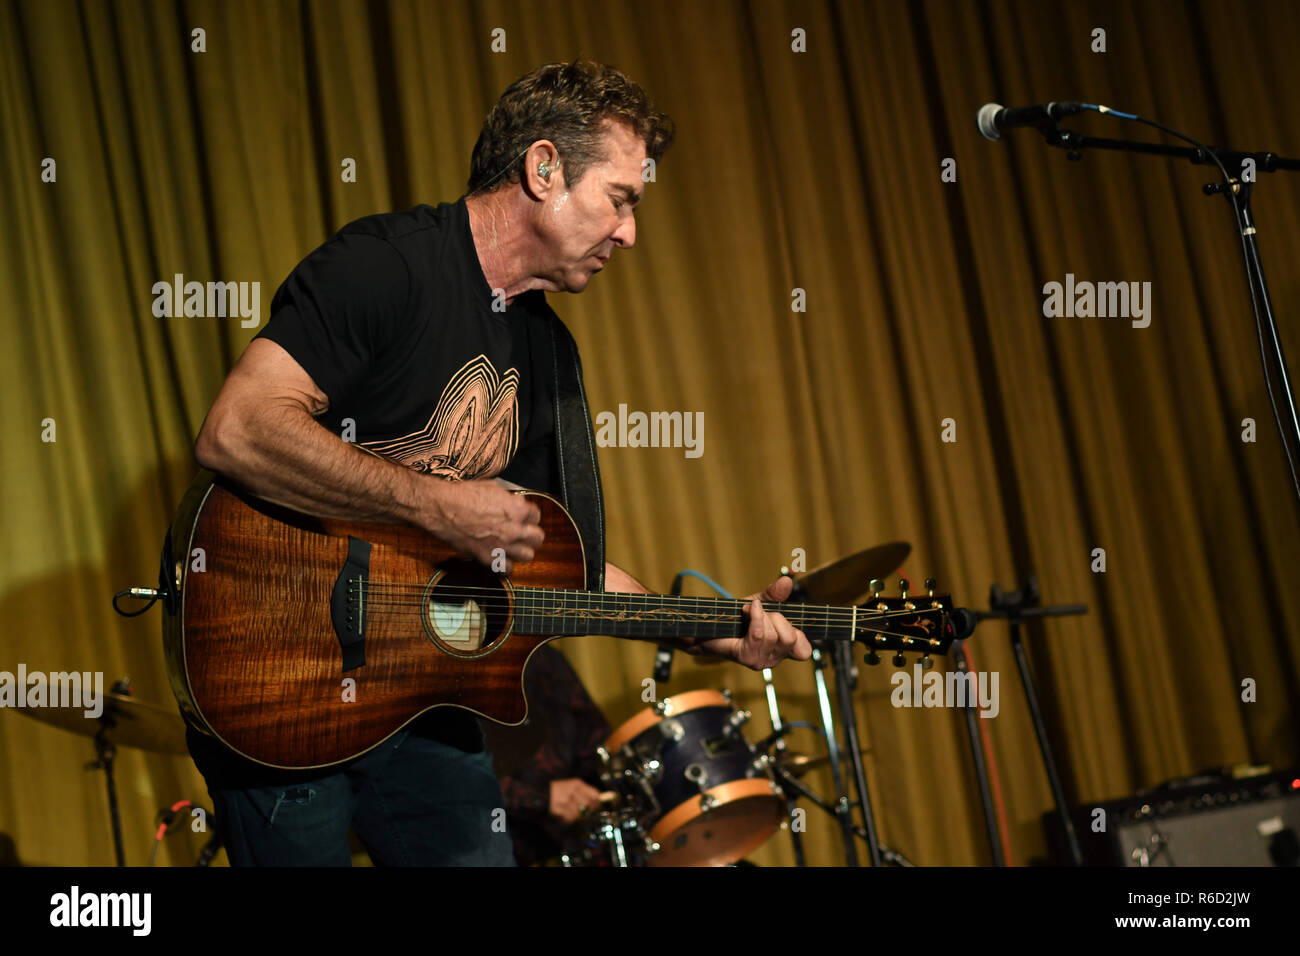 West Los Angeles, CA, USA. 4th Dec, 2018. 04 December 2018 - West Los Angeles, California - Dennis Quaid . Dennis Quaid and The Sharks Album Release Party and Performance held at The Village. Photo Credit: Birdie Thompson/AdMedia Credit: Birdie Thompson/AdMedia/ZUMA Wire/Alamy Live News Stock Photo